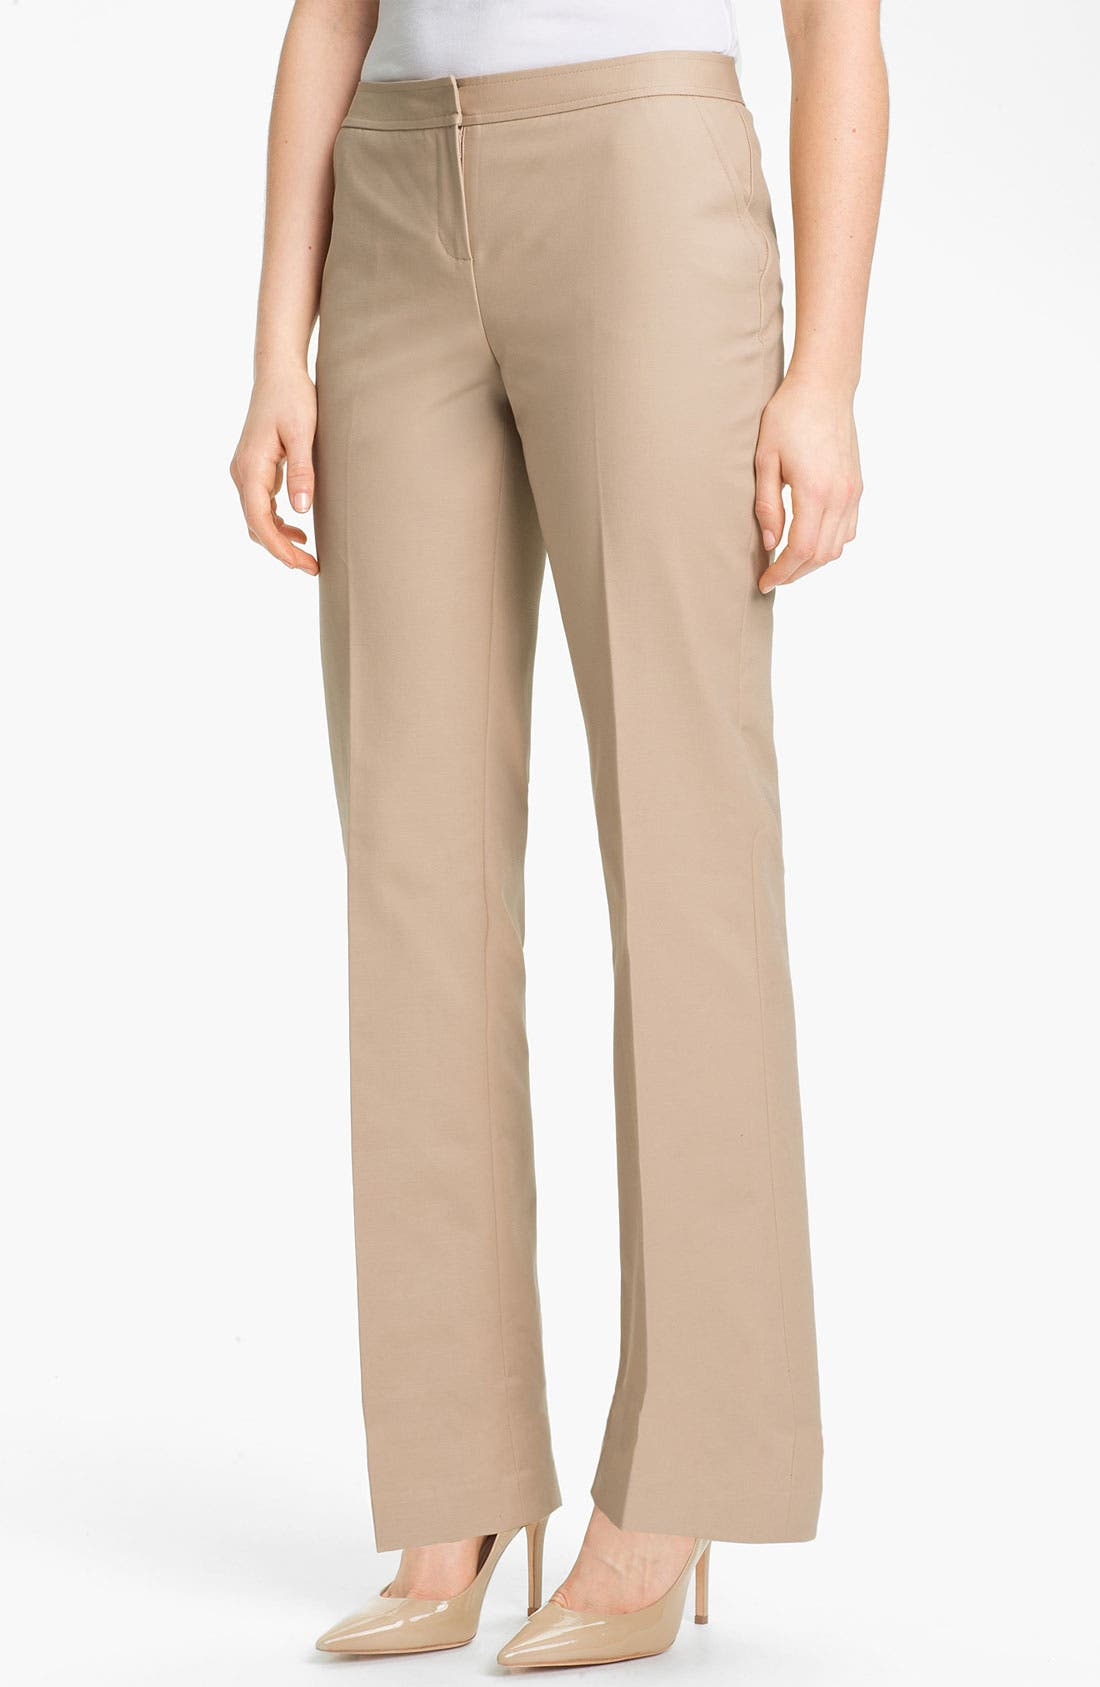 Alternate Image 1 Selected - Halogen® 'Taylor' Curvy Fit Stretch Cotton Blend Pants (Petite)